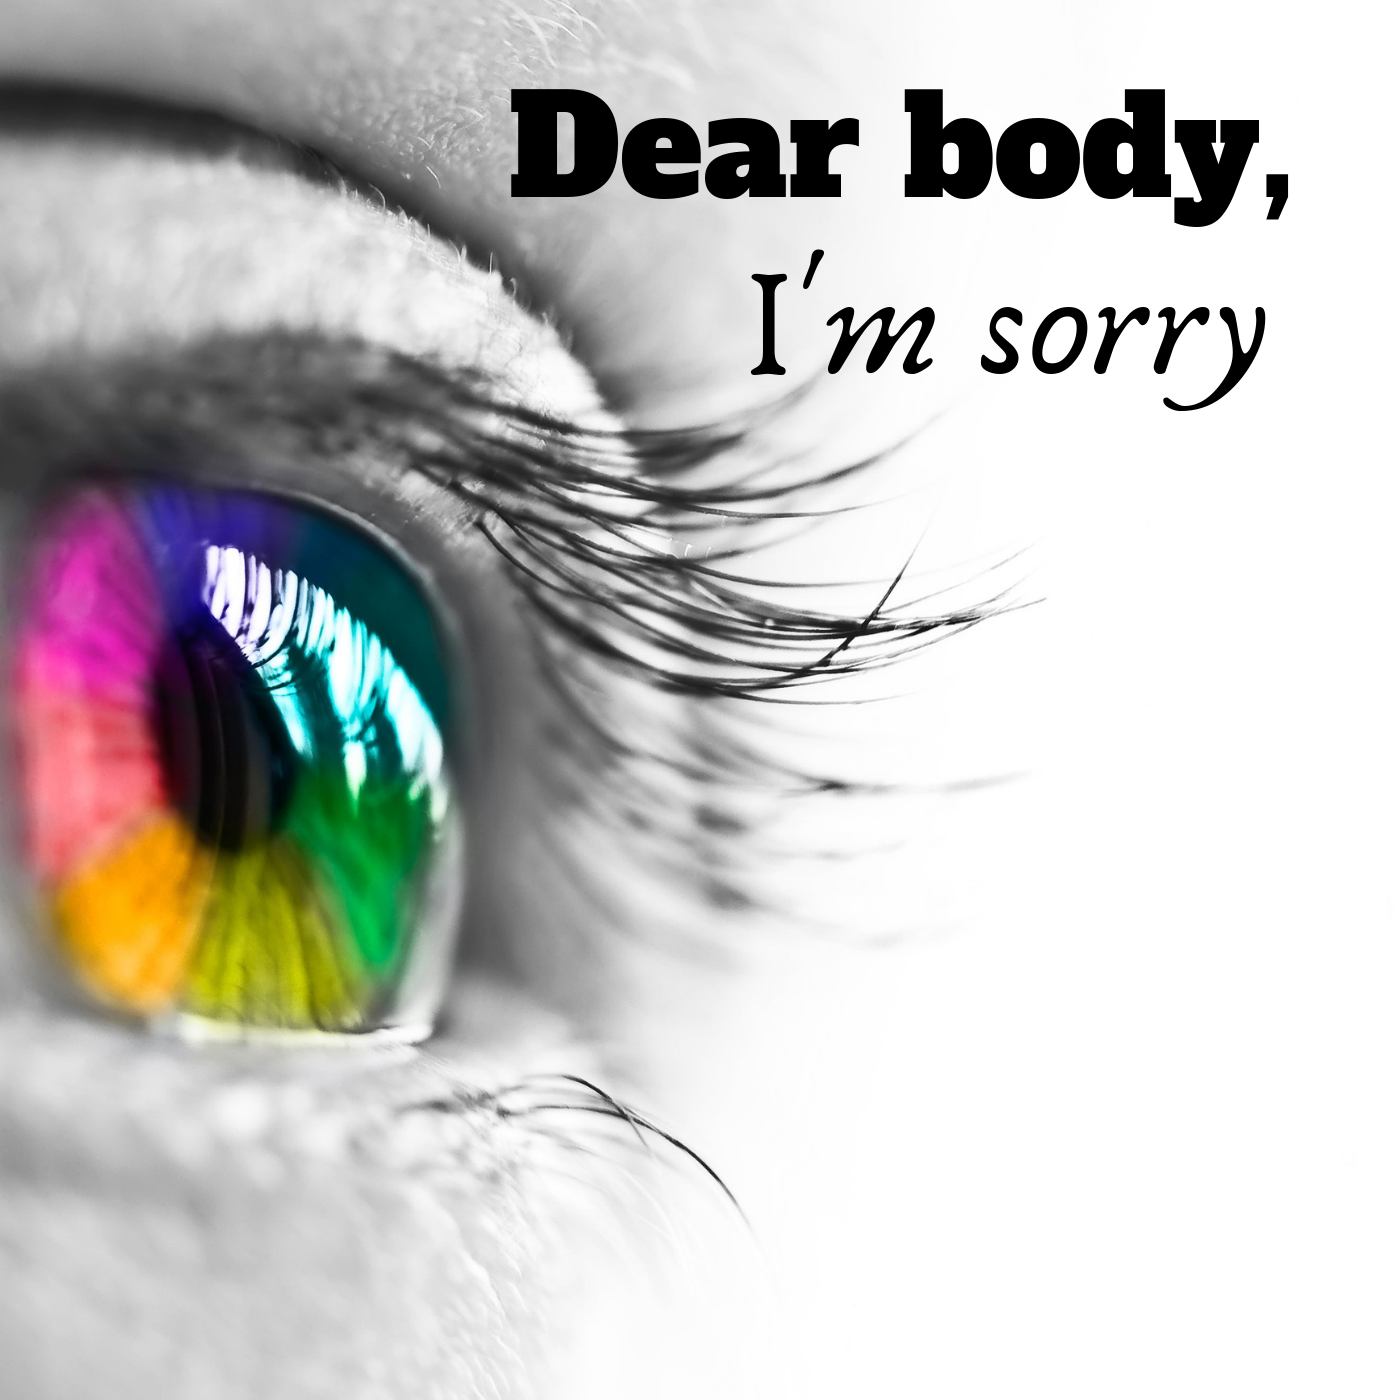 dearbodyimsorry's podcast show image